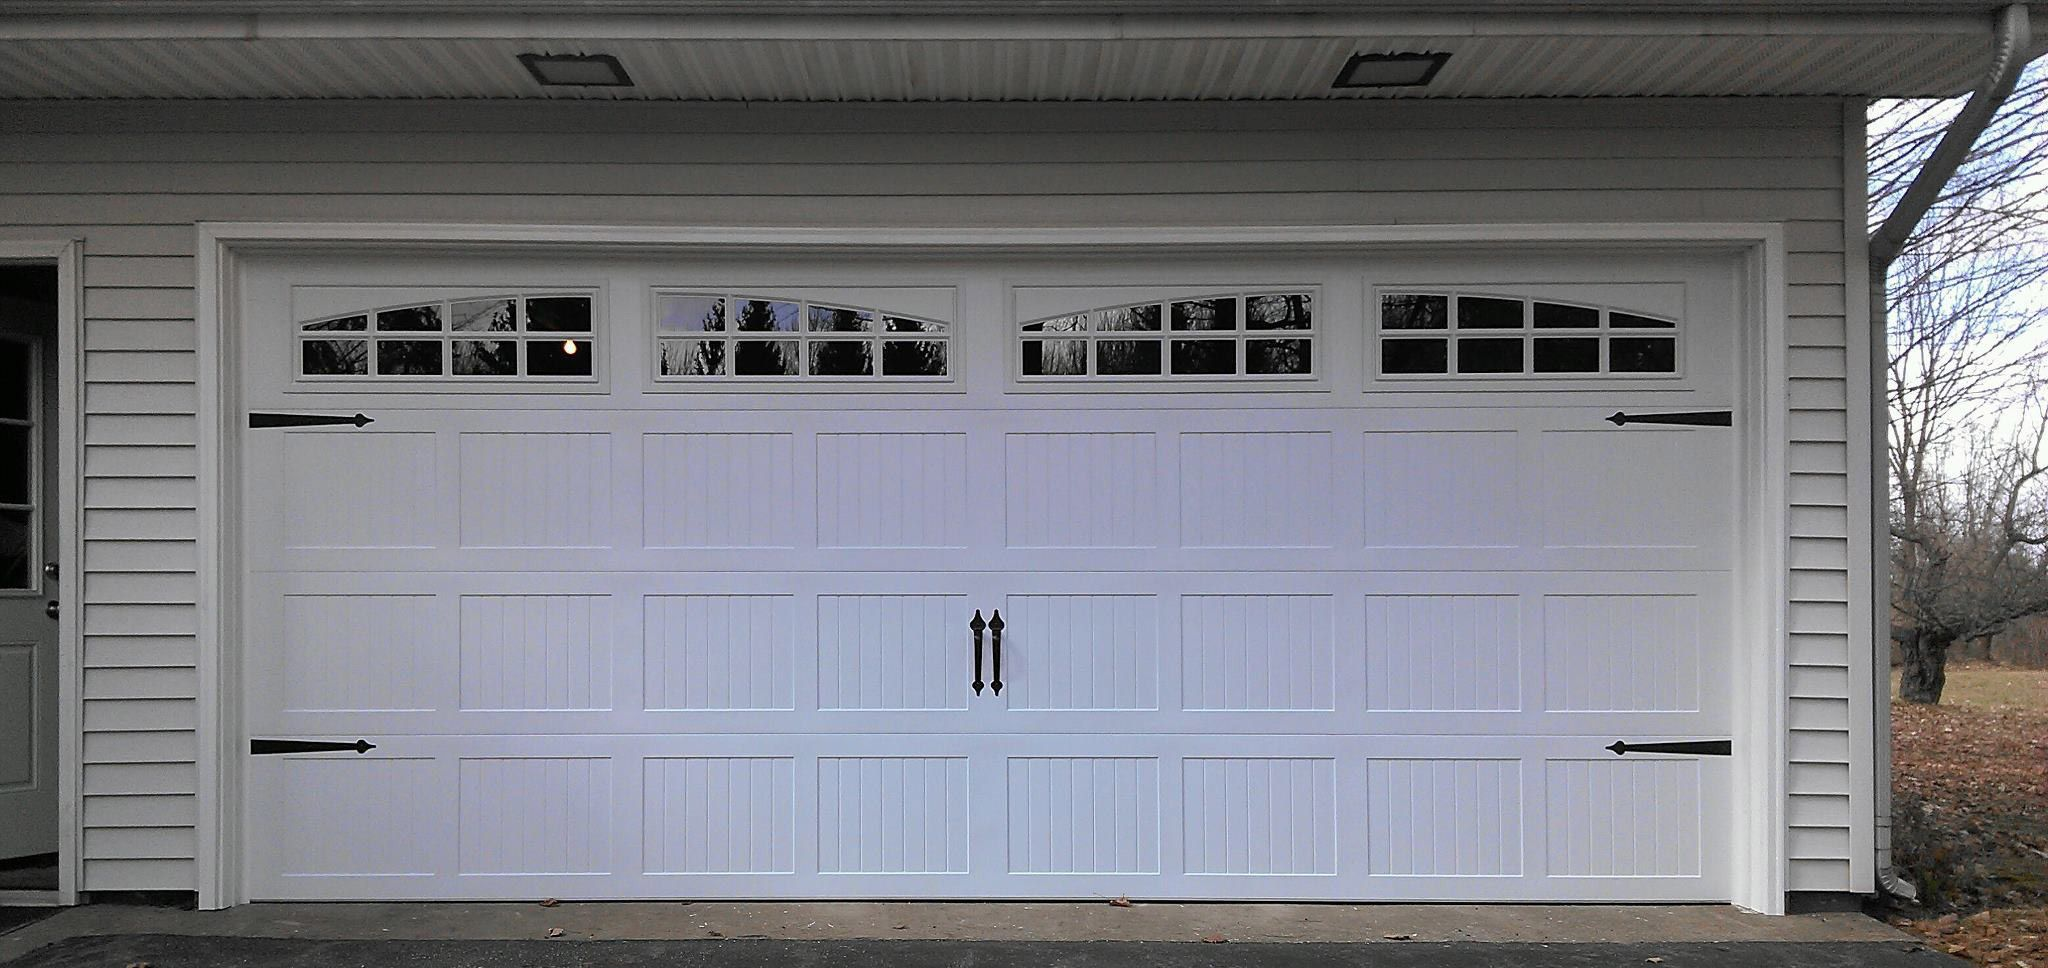 Garage Door Window Inserts Home Depot All About Home Ideas Garage Doors Garage Door Decor Garage Door Panels